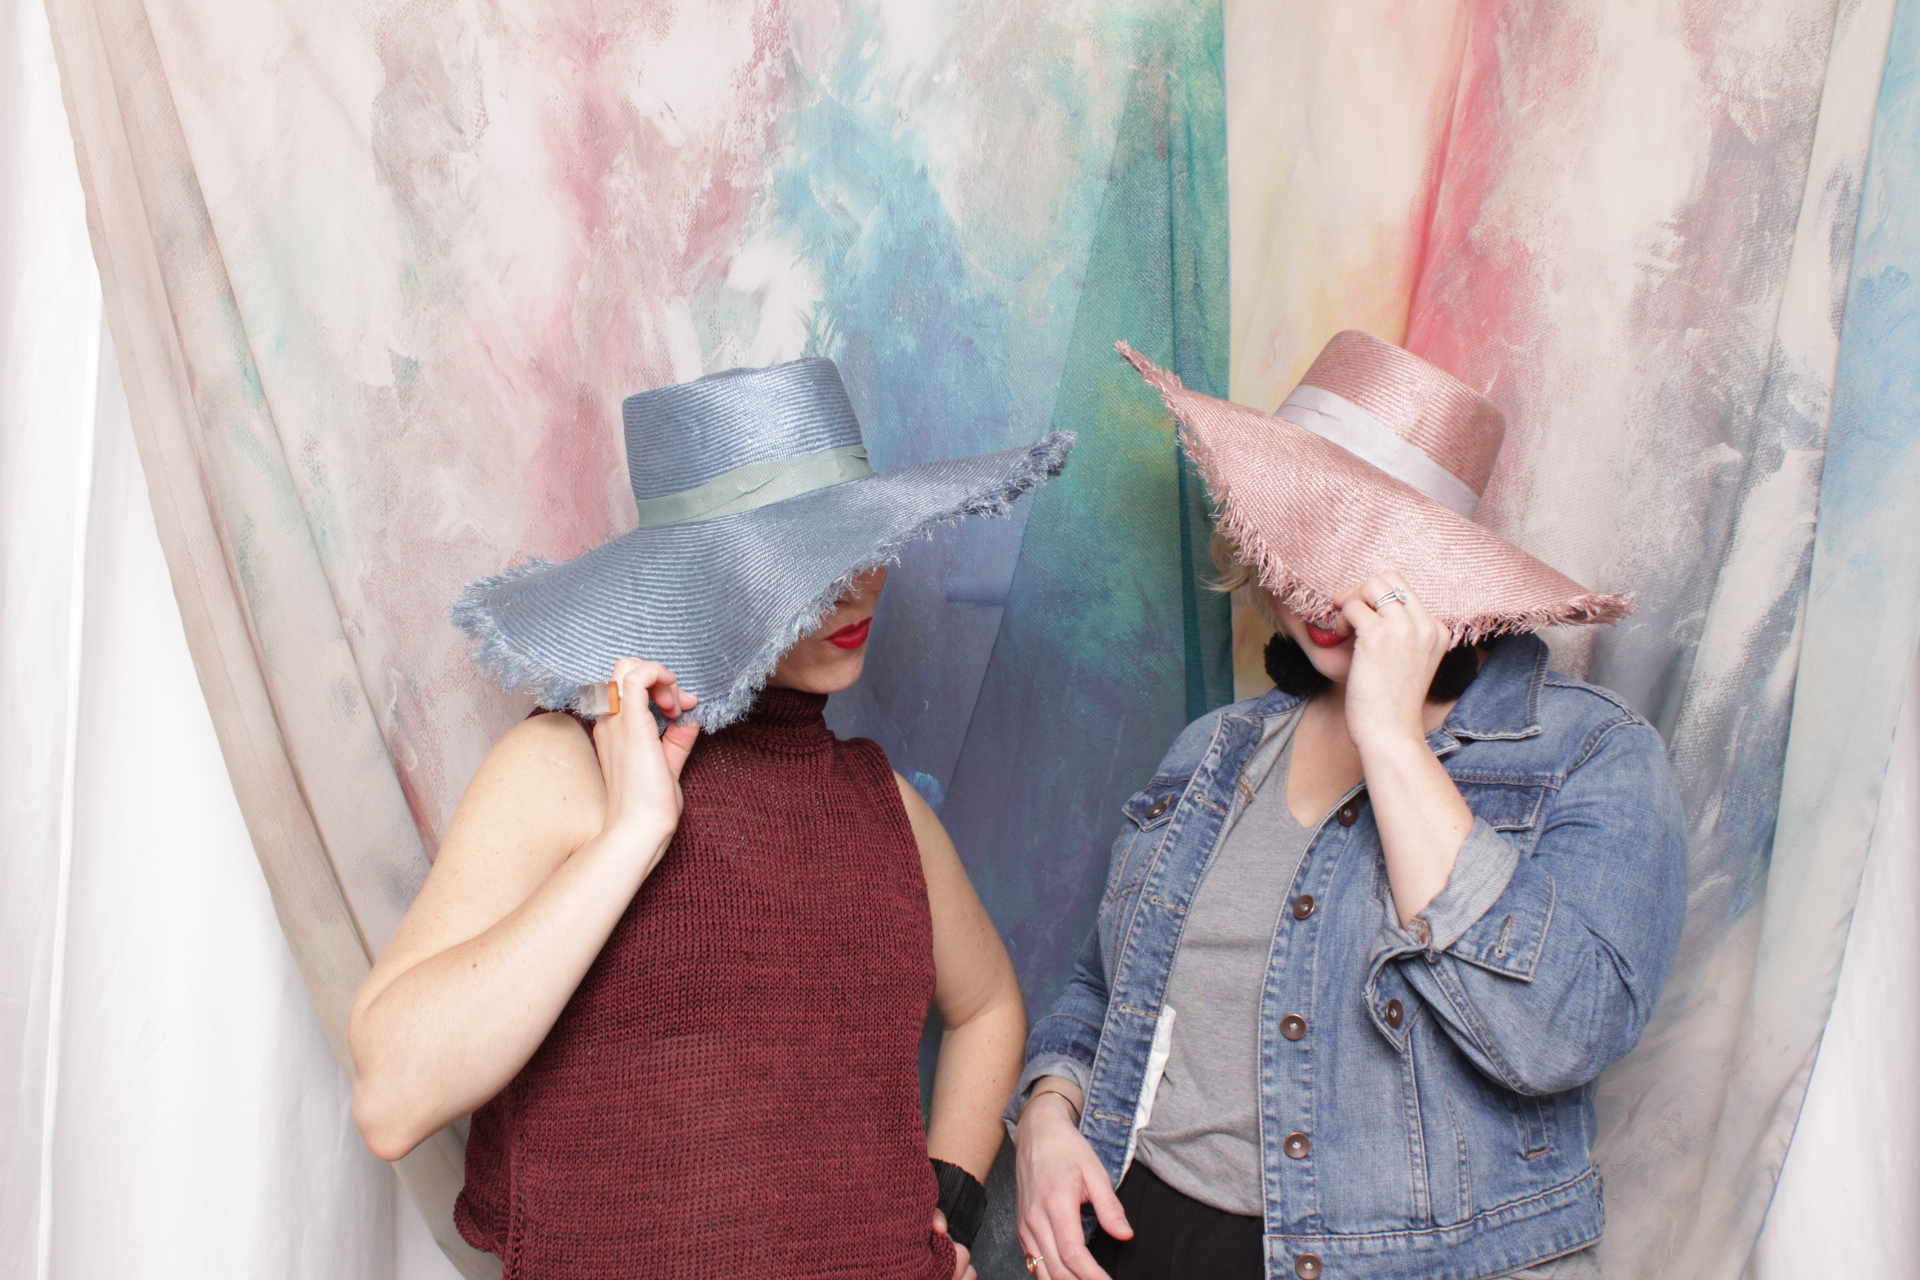 Minneapolis_Photo_Booth_party_rentals (8).jpg